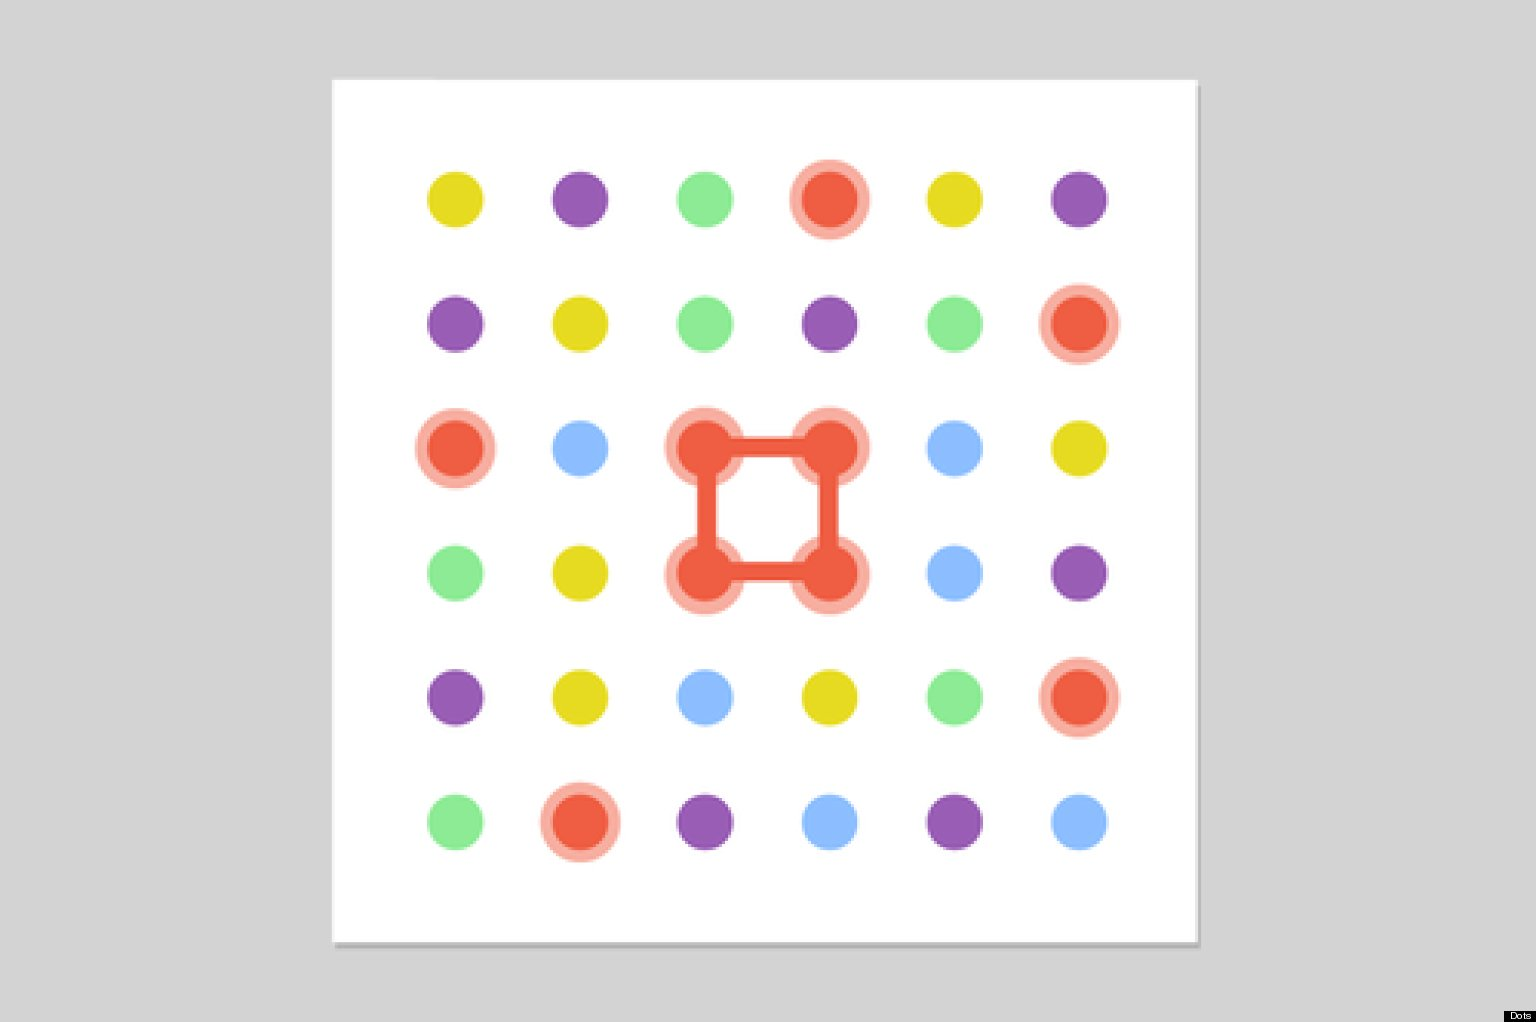 dots game strategy 7 pro tips to improve your high score huffpost